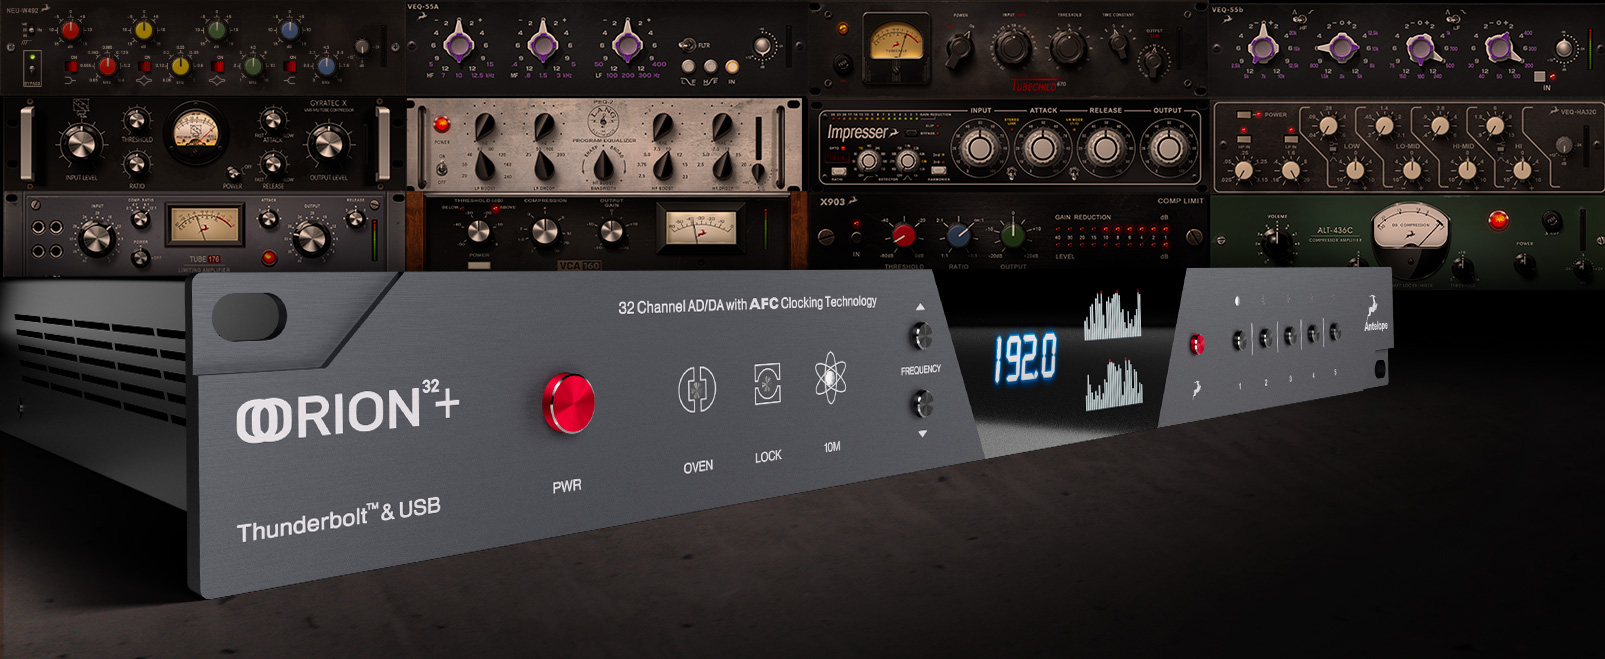 5 Reasons Why the Orion 32+ Gen 3 Interface is the Top Choice in Pro Audio